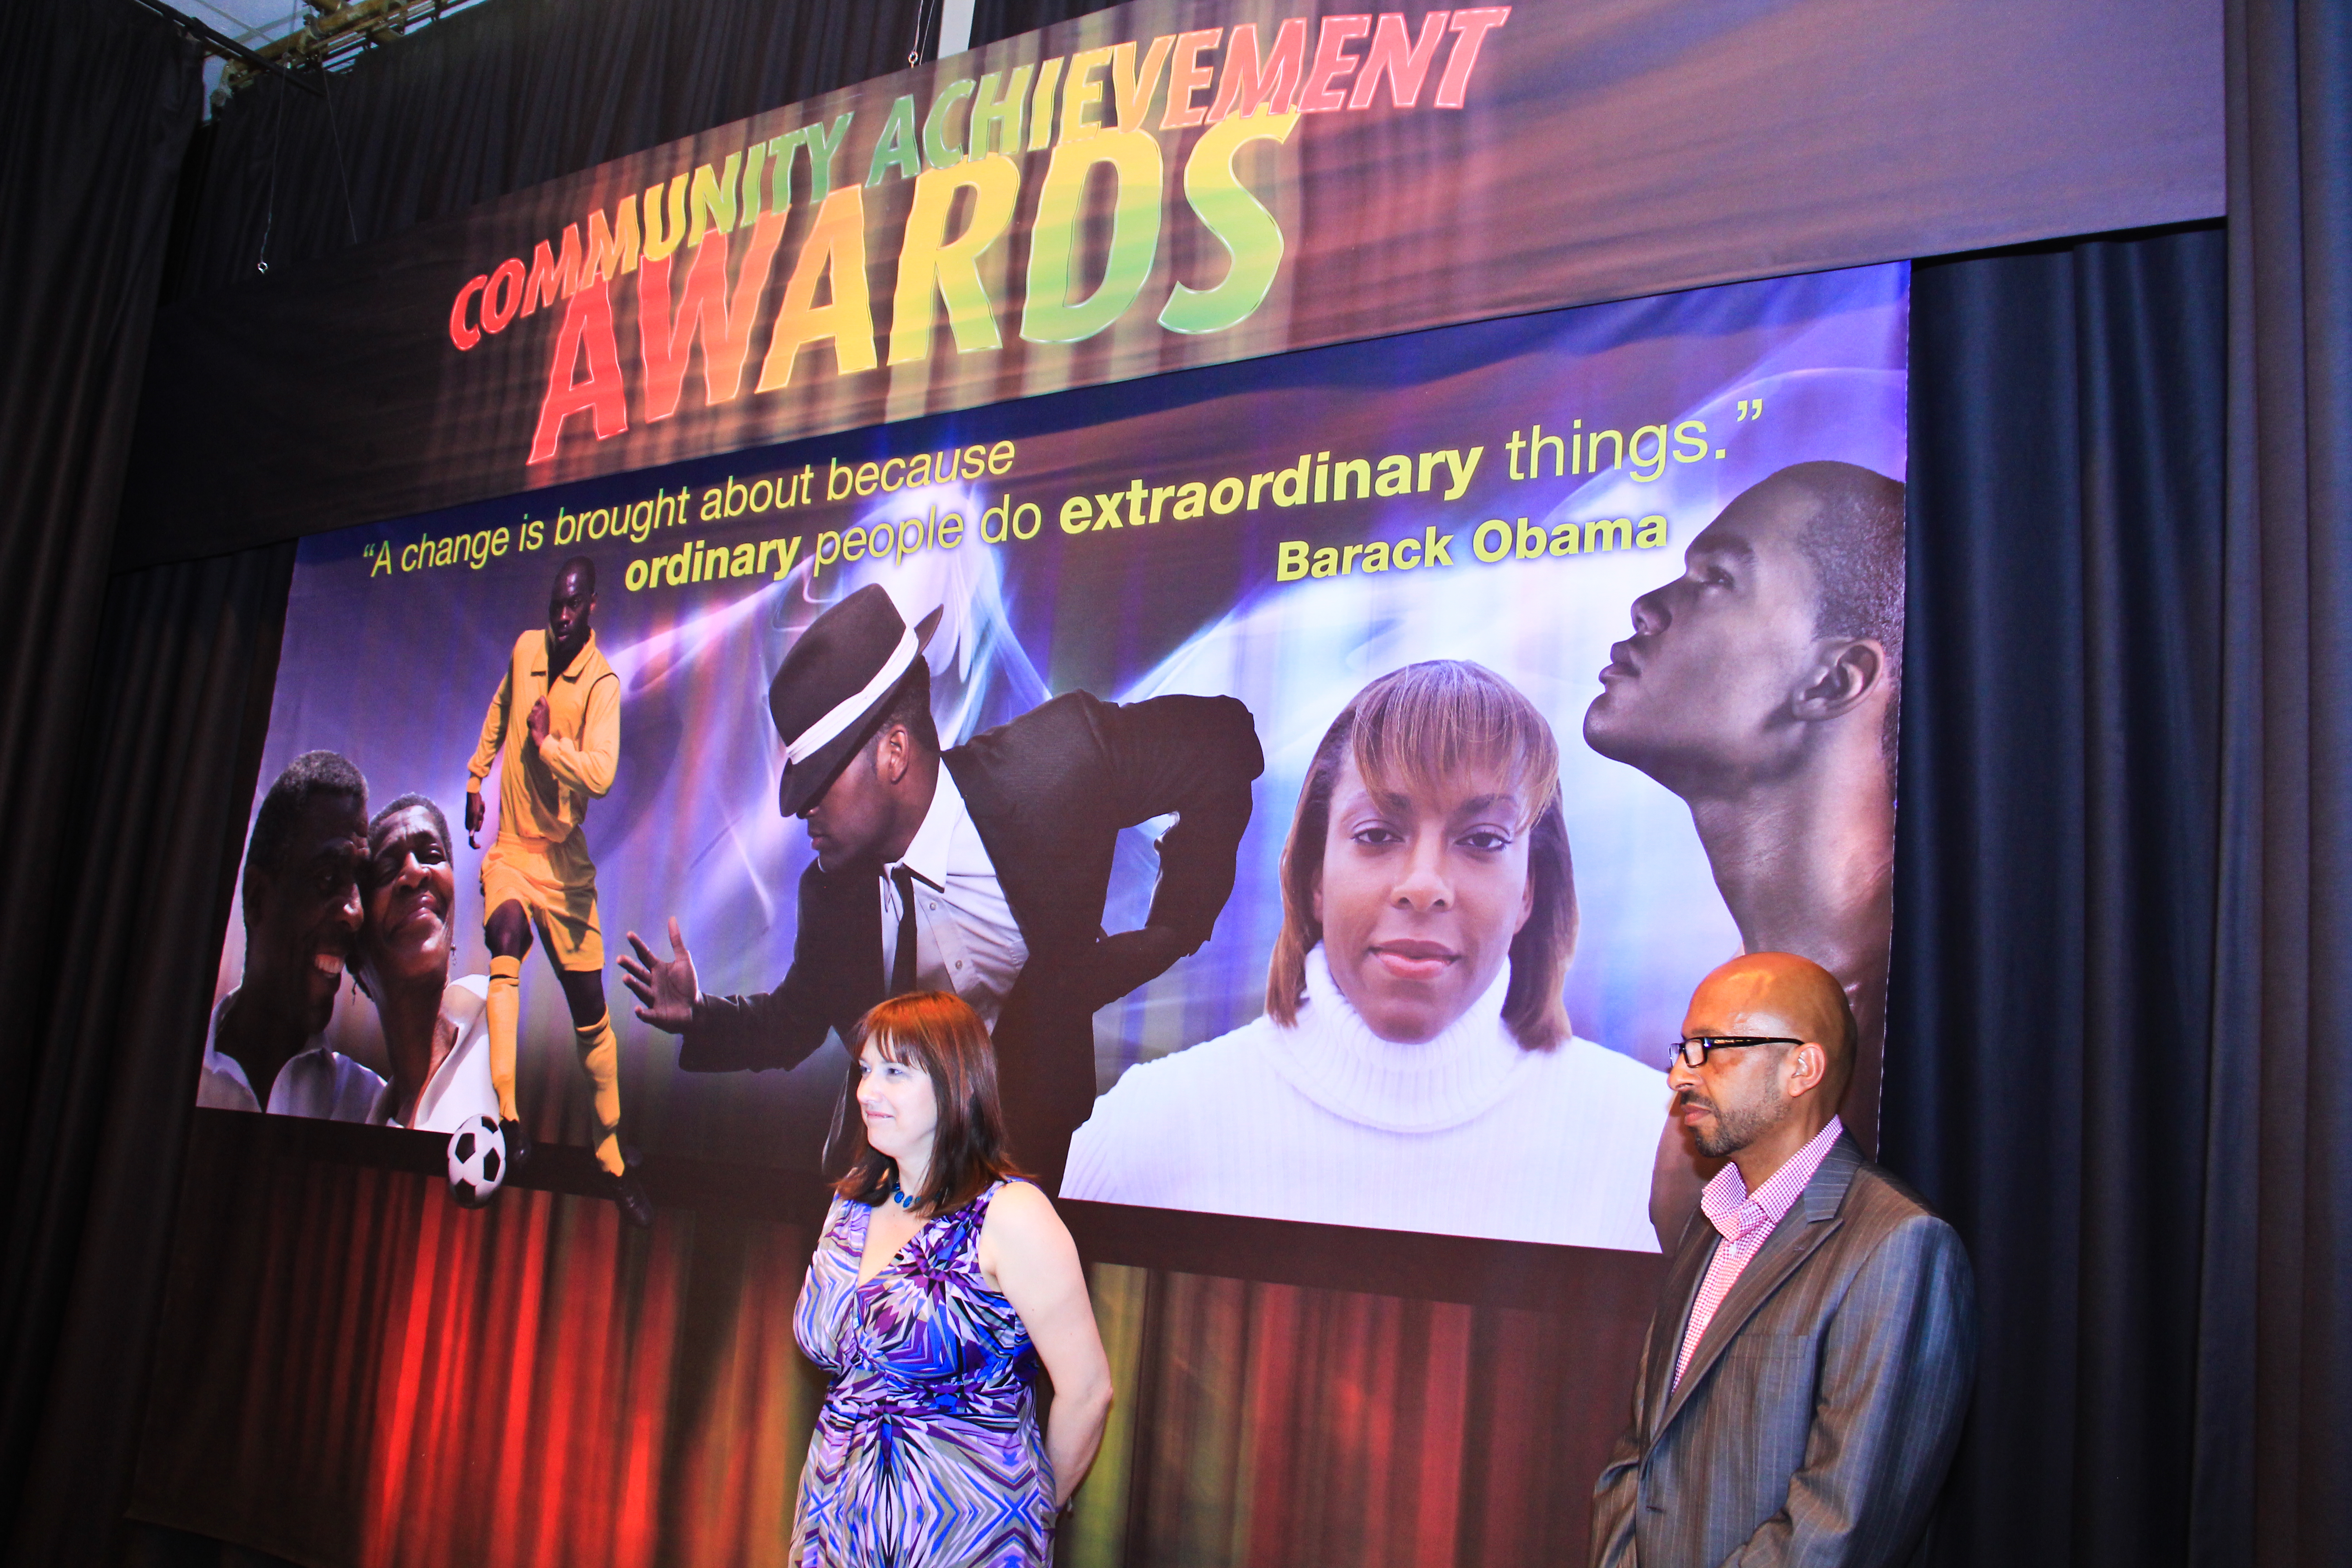 Community Achievement Awards (ACCF) 2011 — Page Banner